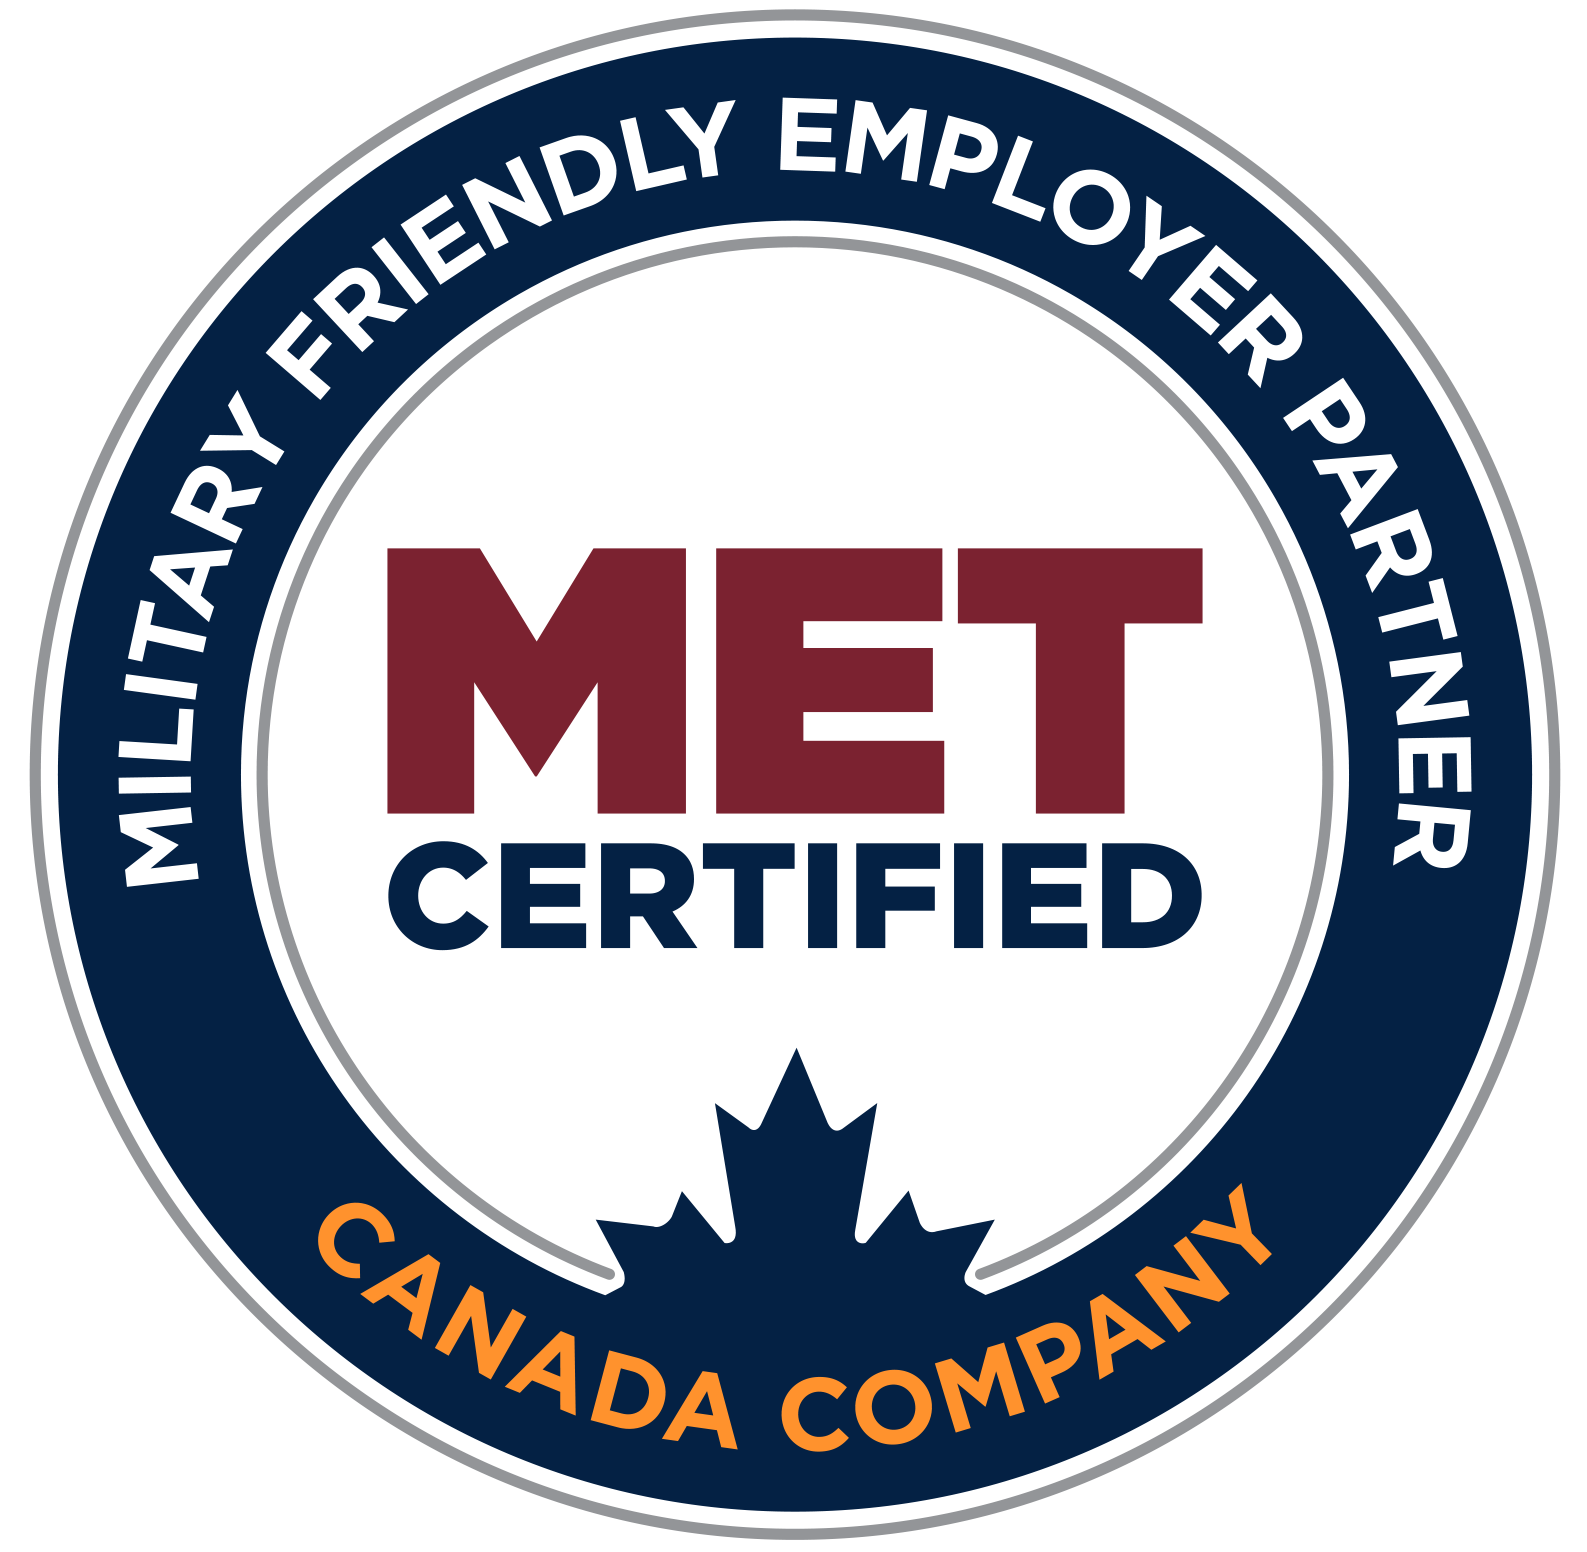 Military Friendly Employer Partner – The Canada Company Military Employment Transition (MET) Program assists Canadian Armed Forces Members, Reservists, Veterans and Military Spouses who are seeking to find jobs in the civilian workforce.